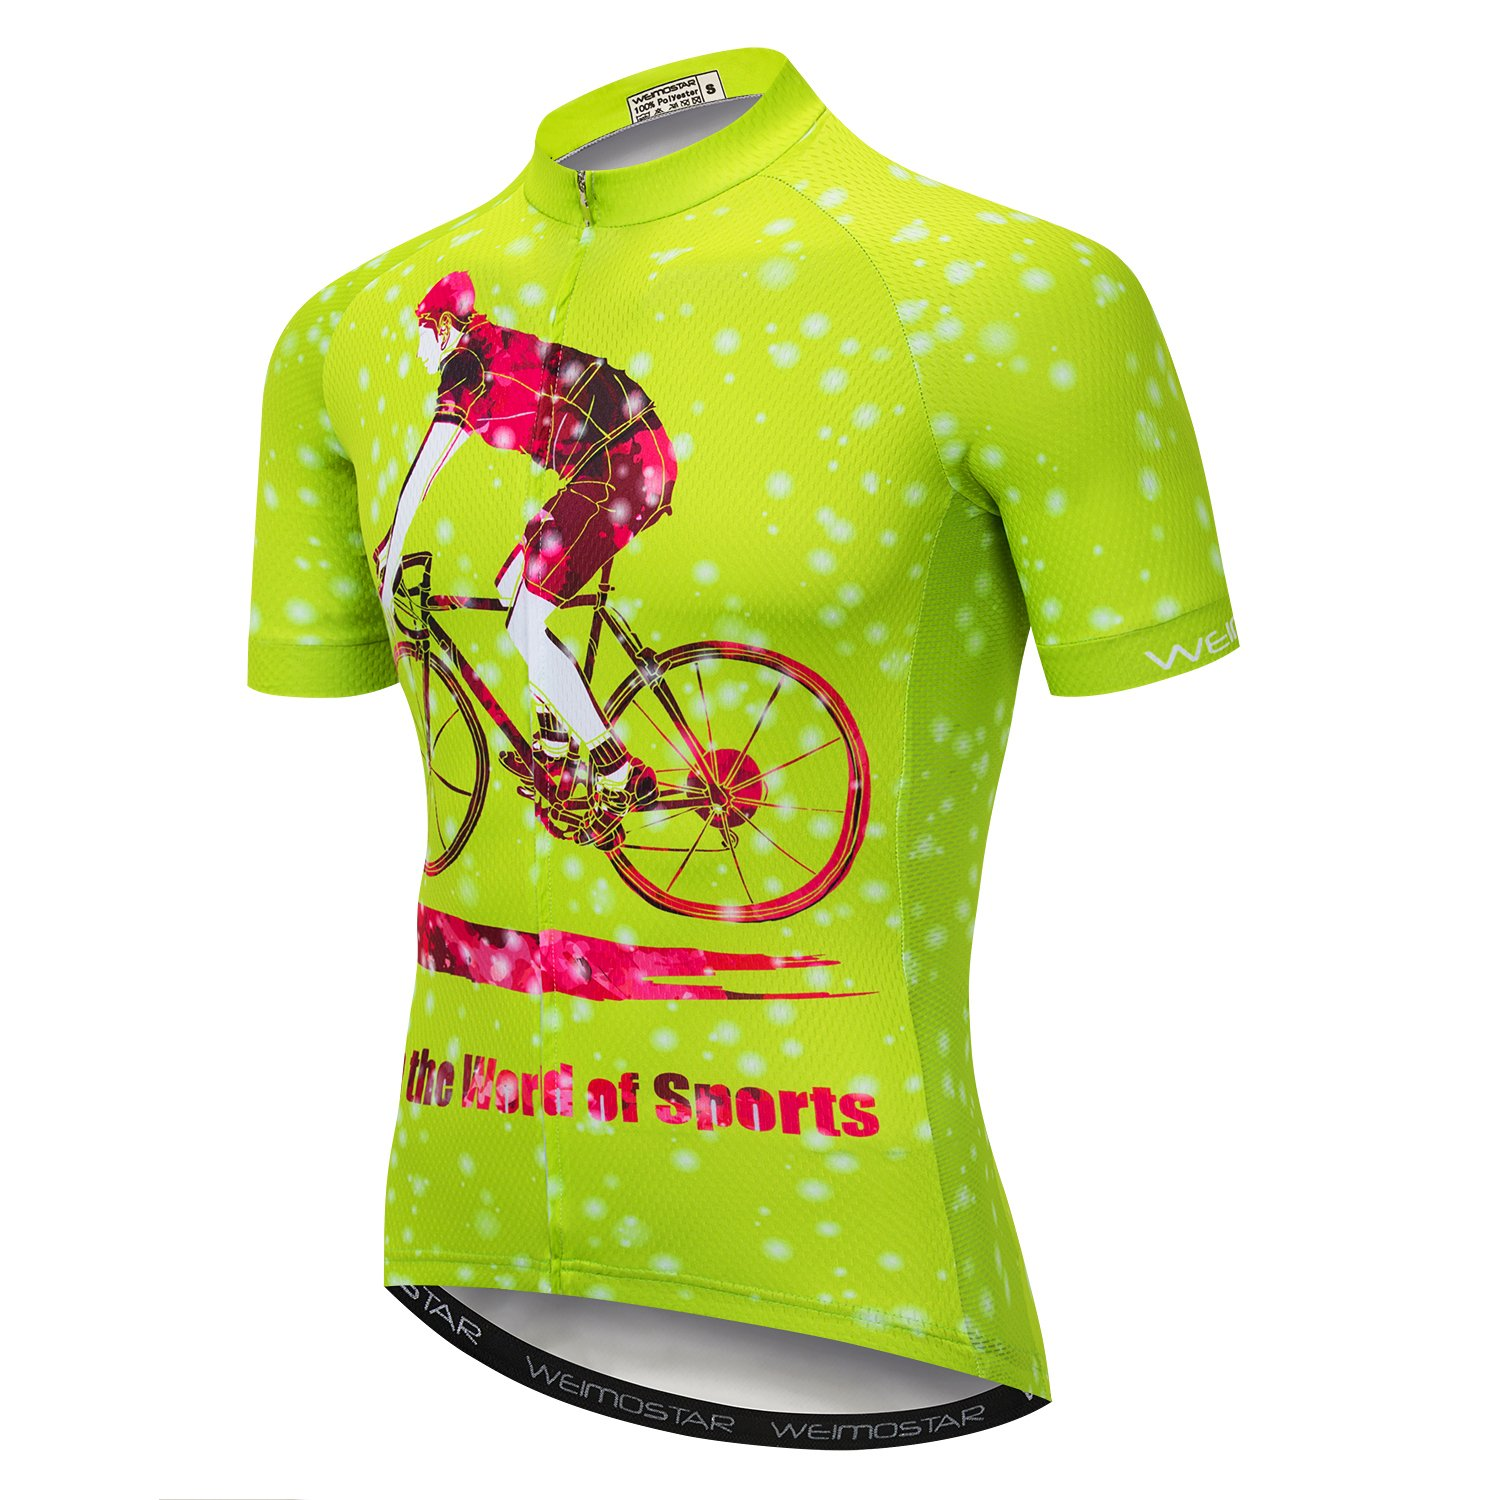 453dcb30b9a Amazon.com   xingrass Men s Cycling Short Sleeve Jersey Comfortable  Breathable Shirts Bike Clothing Tops Full Zip Bicycle Jacket with Pockets  Quick Dry ...